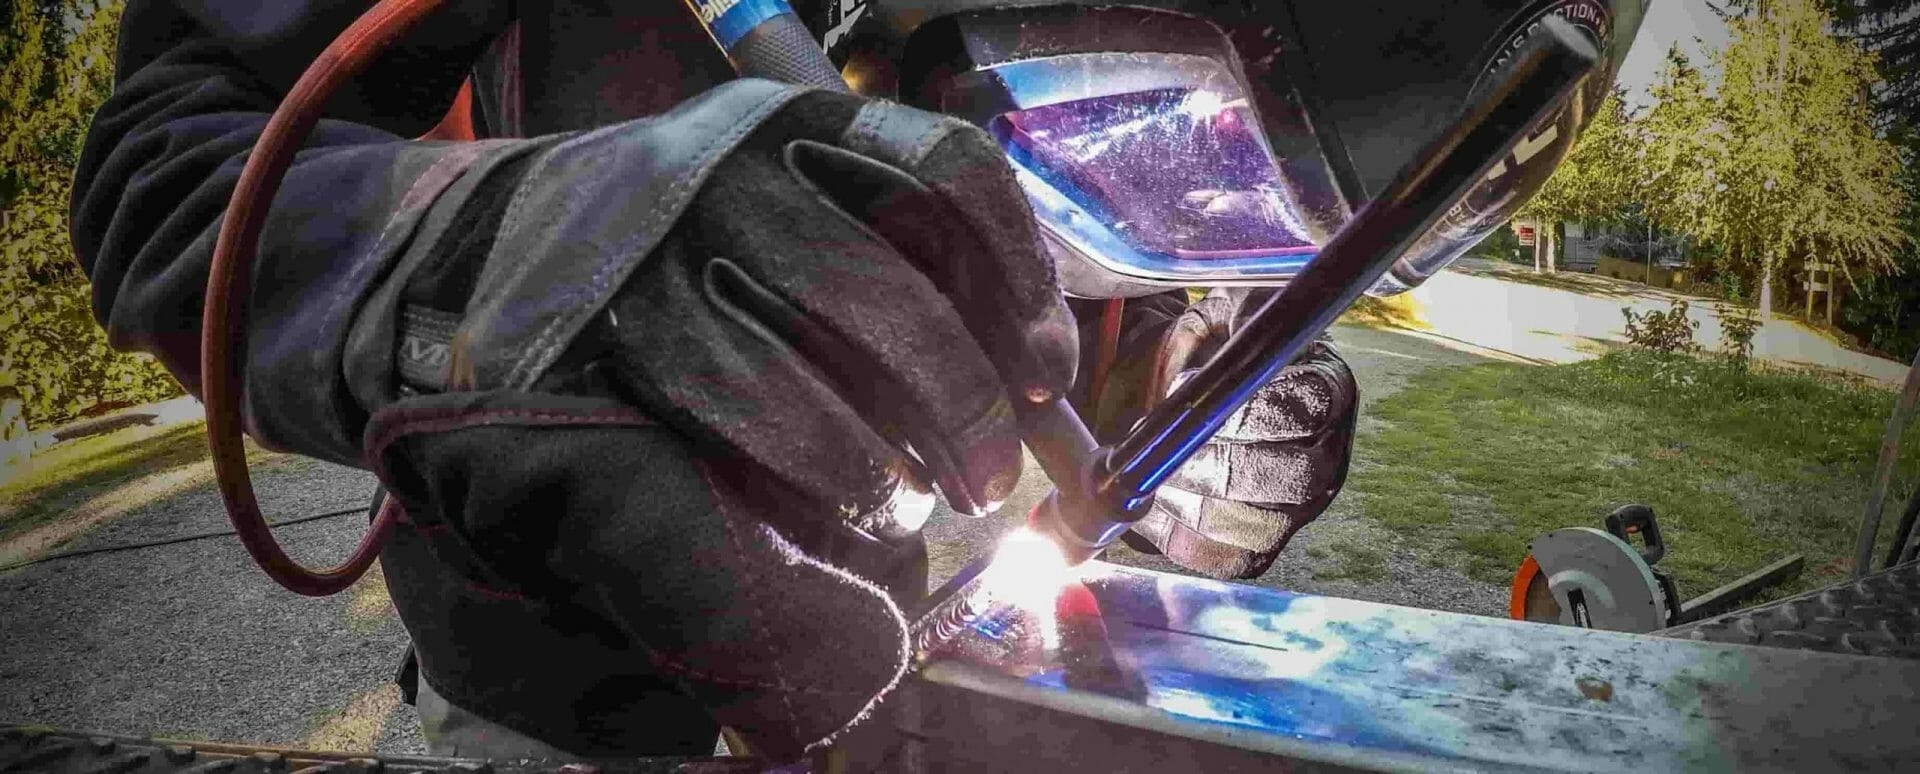 Tig-Welding-Gloves-min